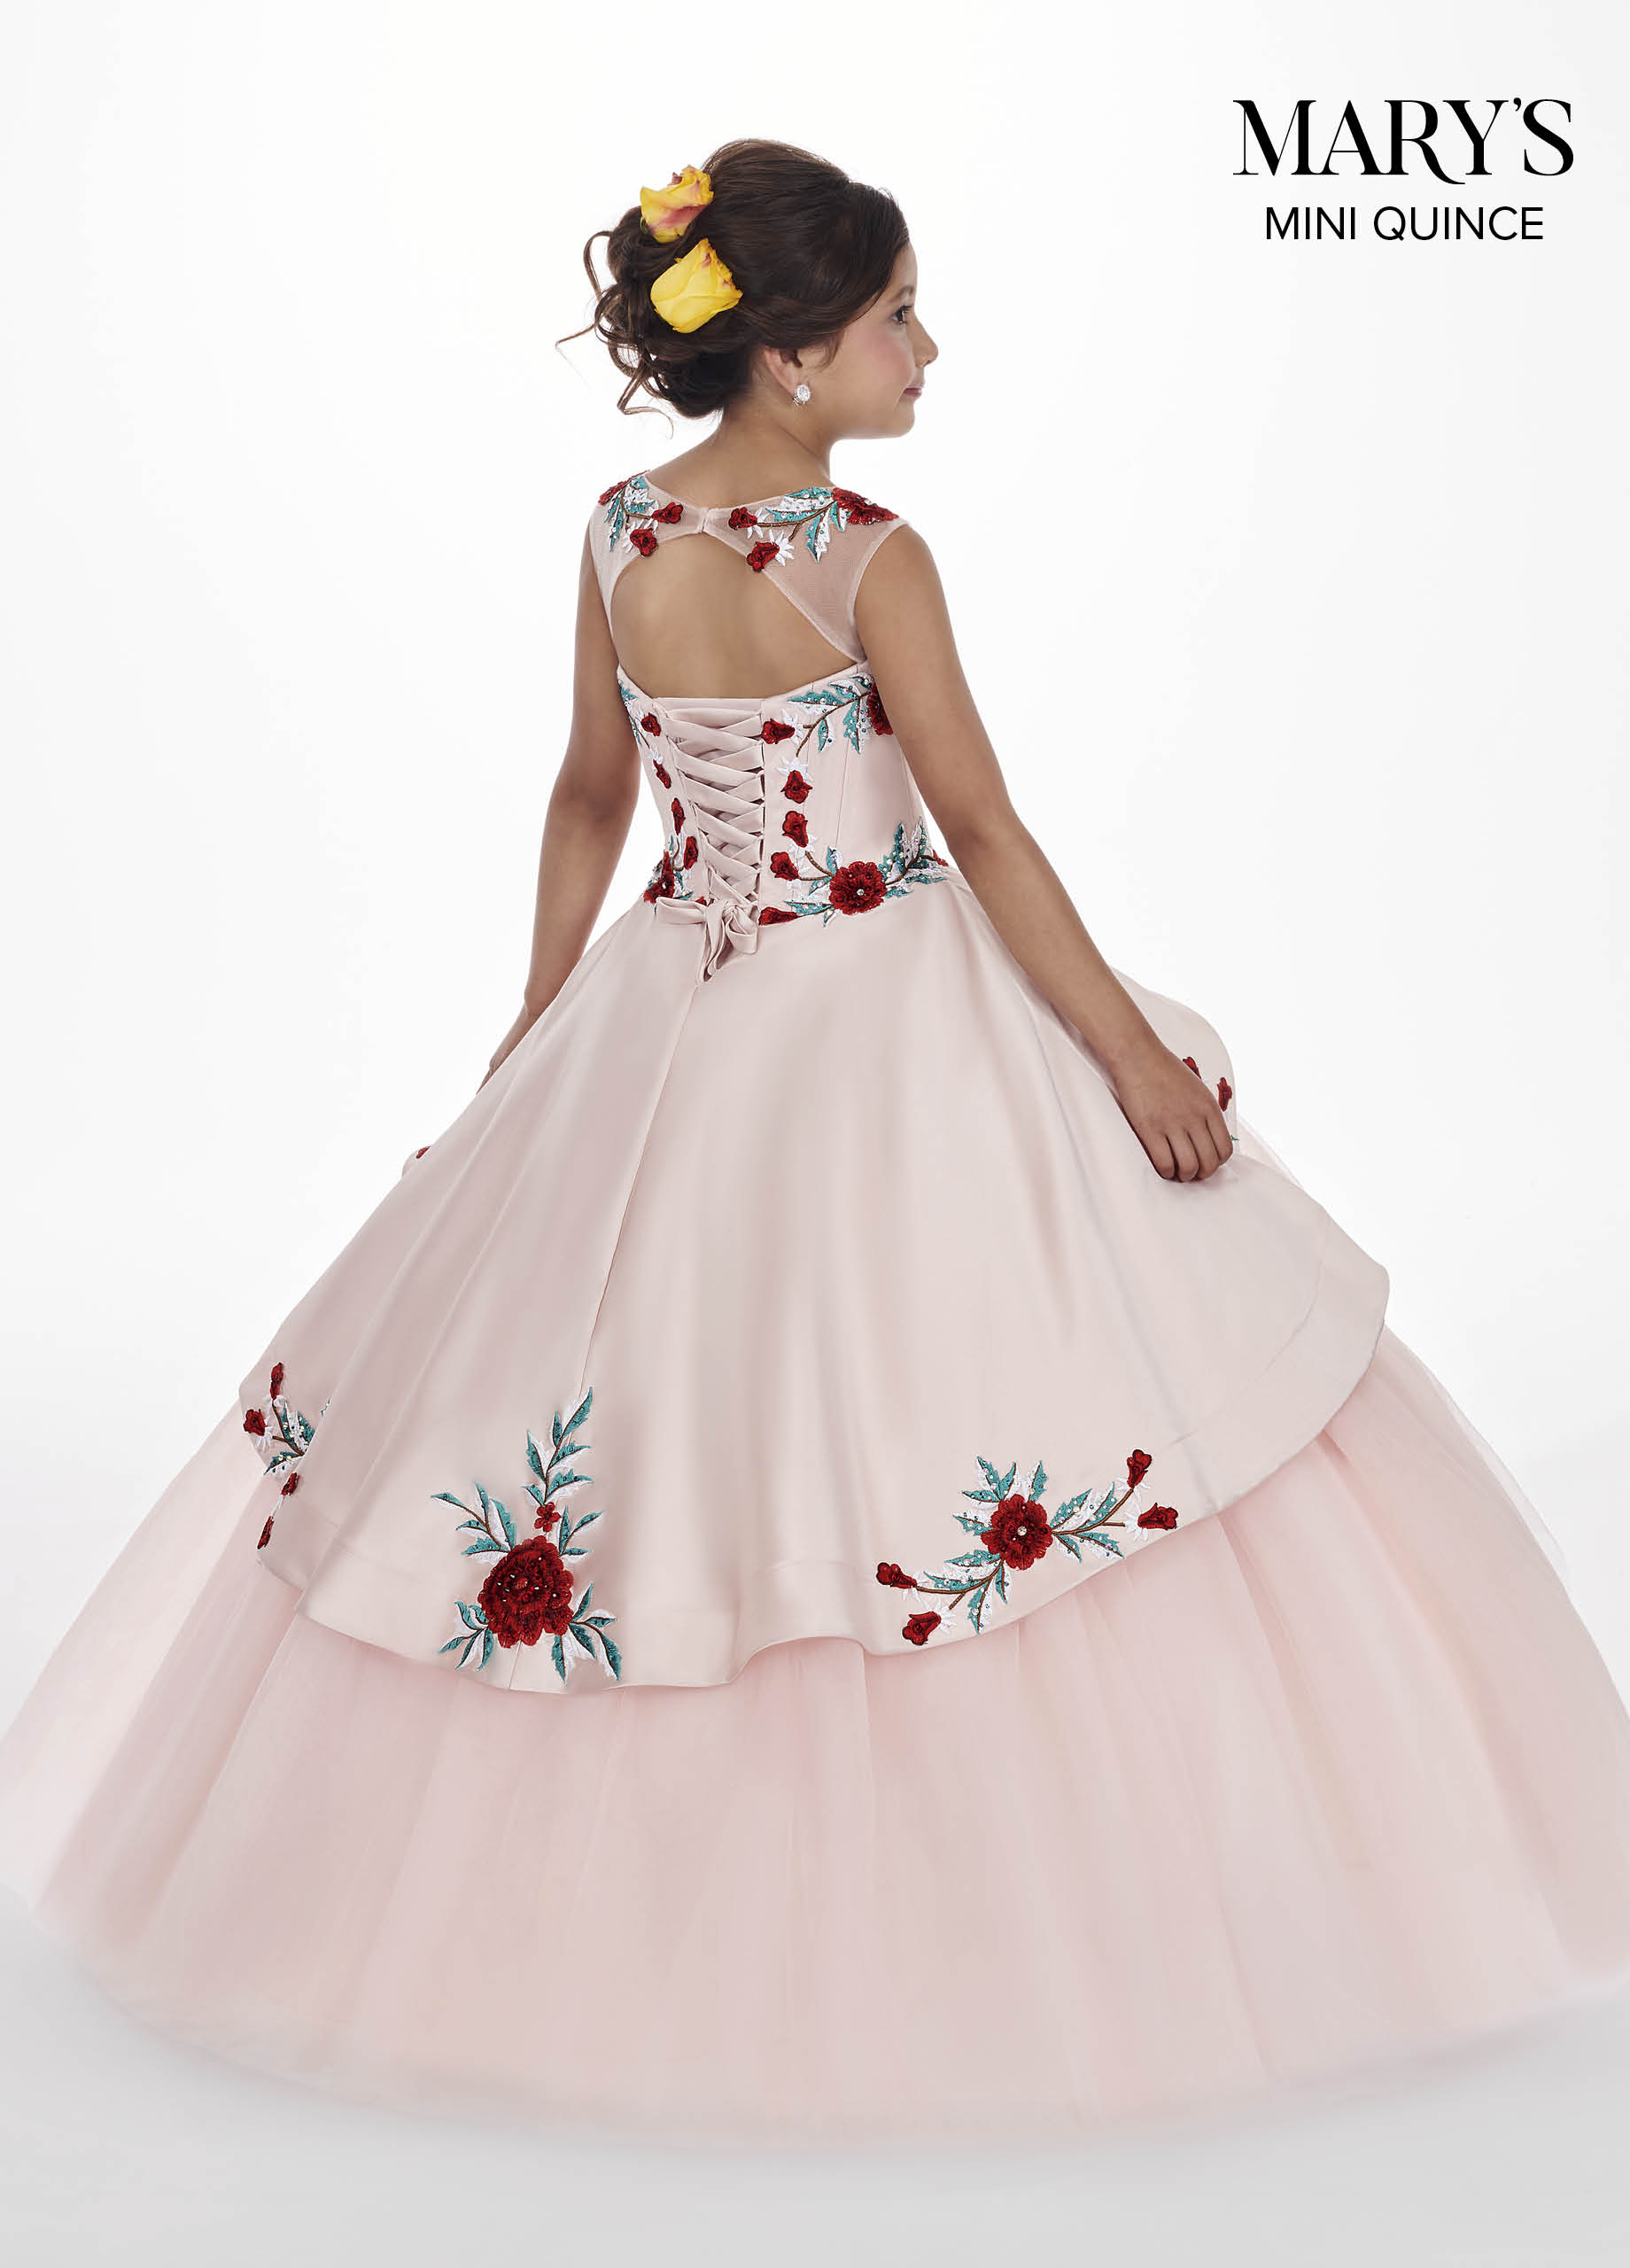 Little Quince Dresses | Mini Quince | Style - MQ4009